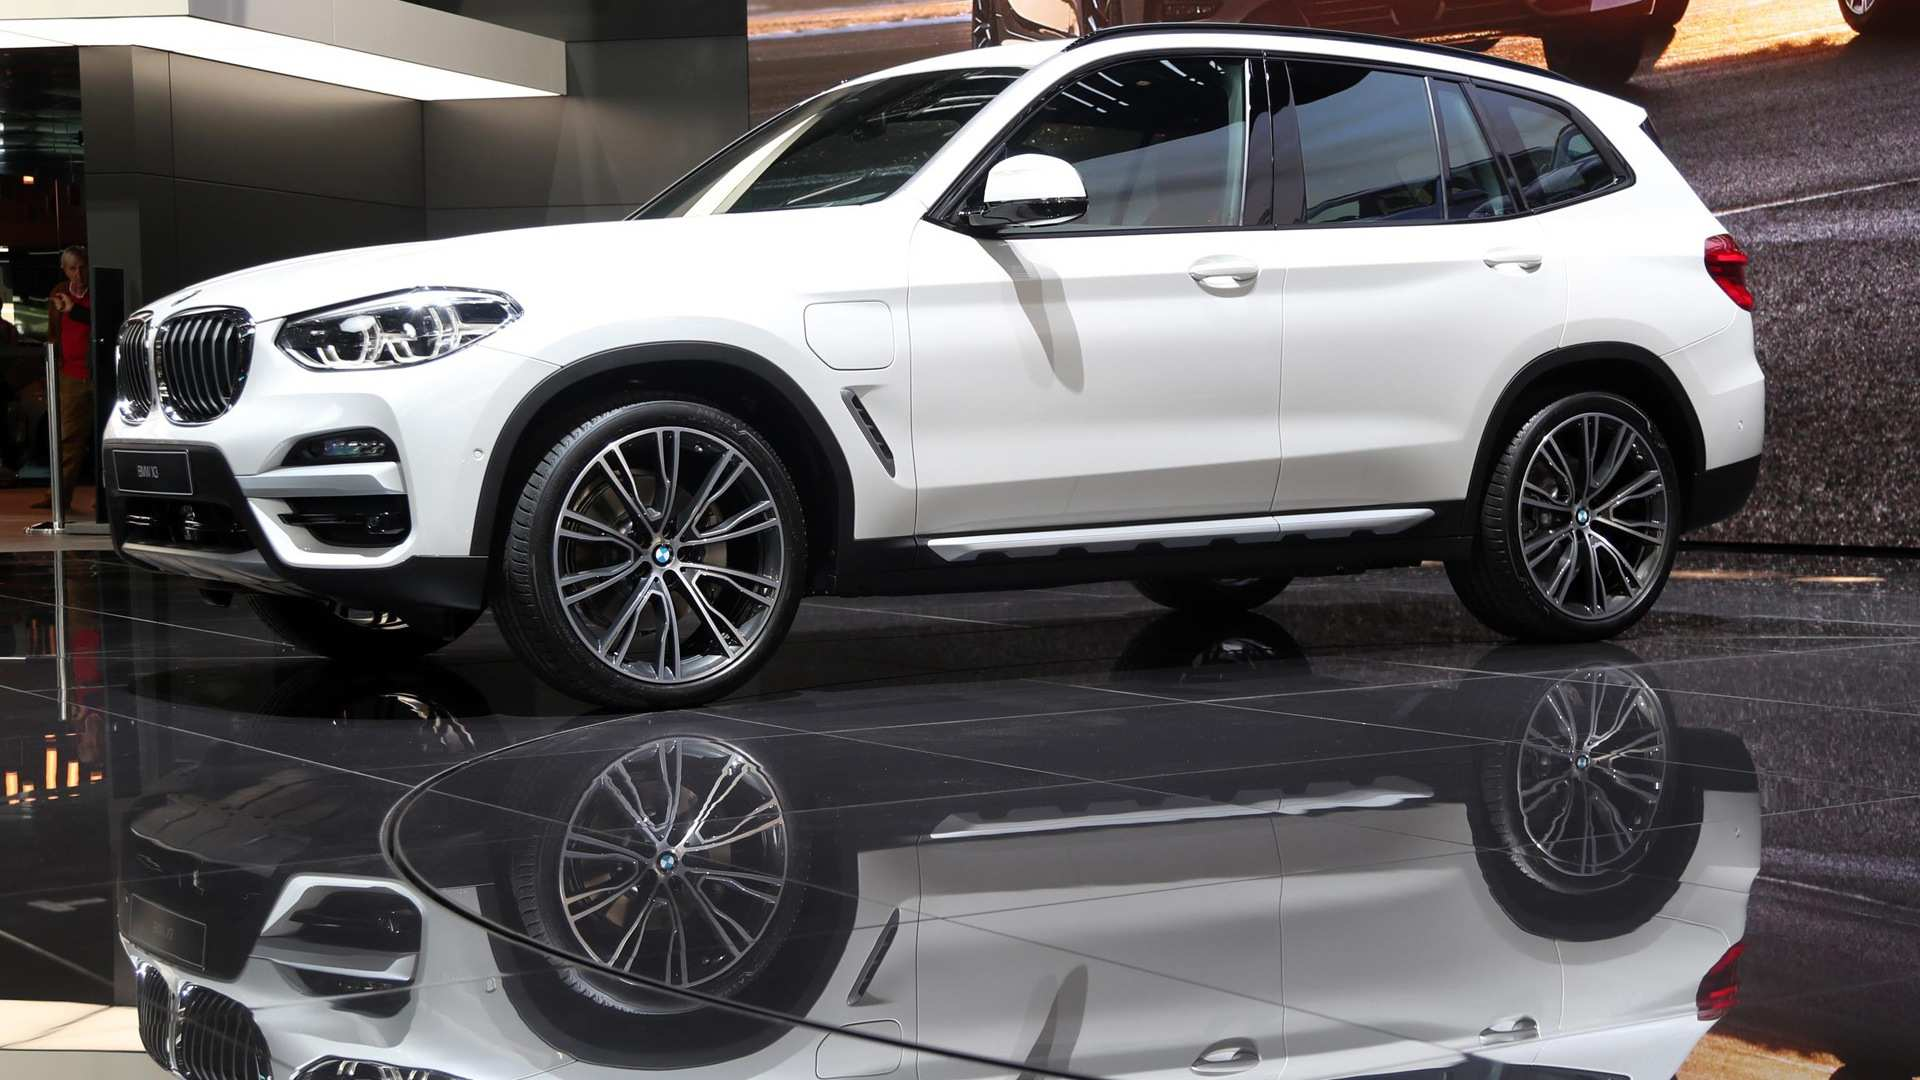 45 The 2020 BMW X3 Hybrid Pricing